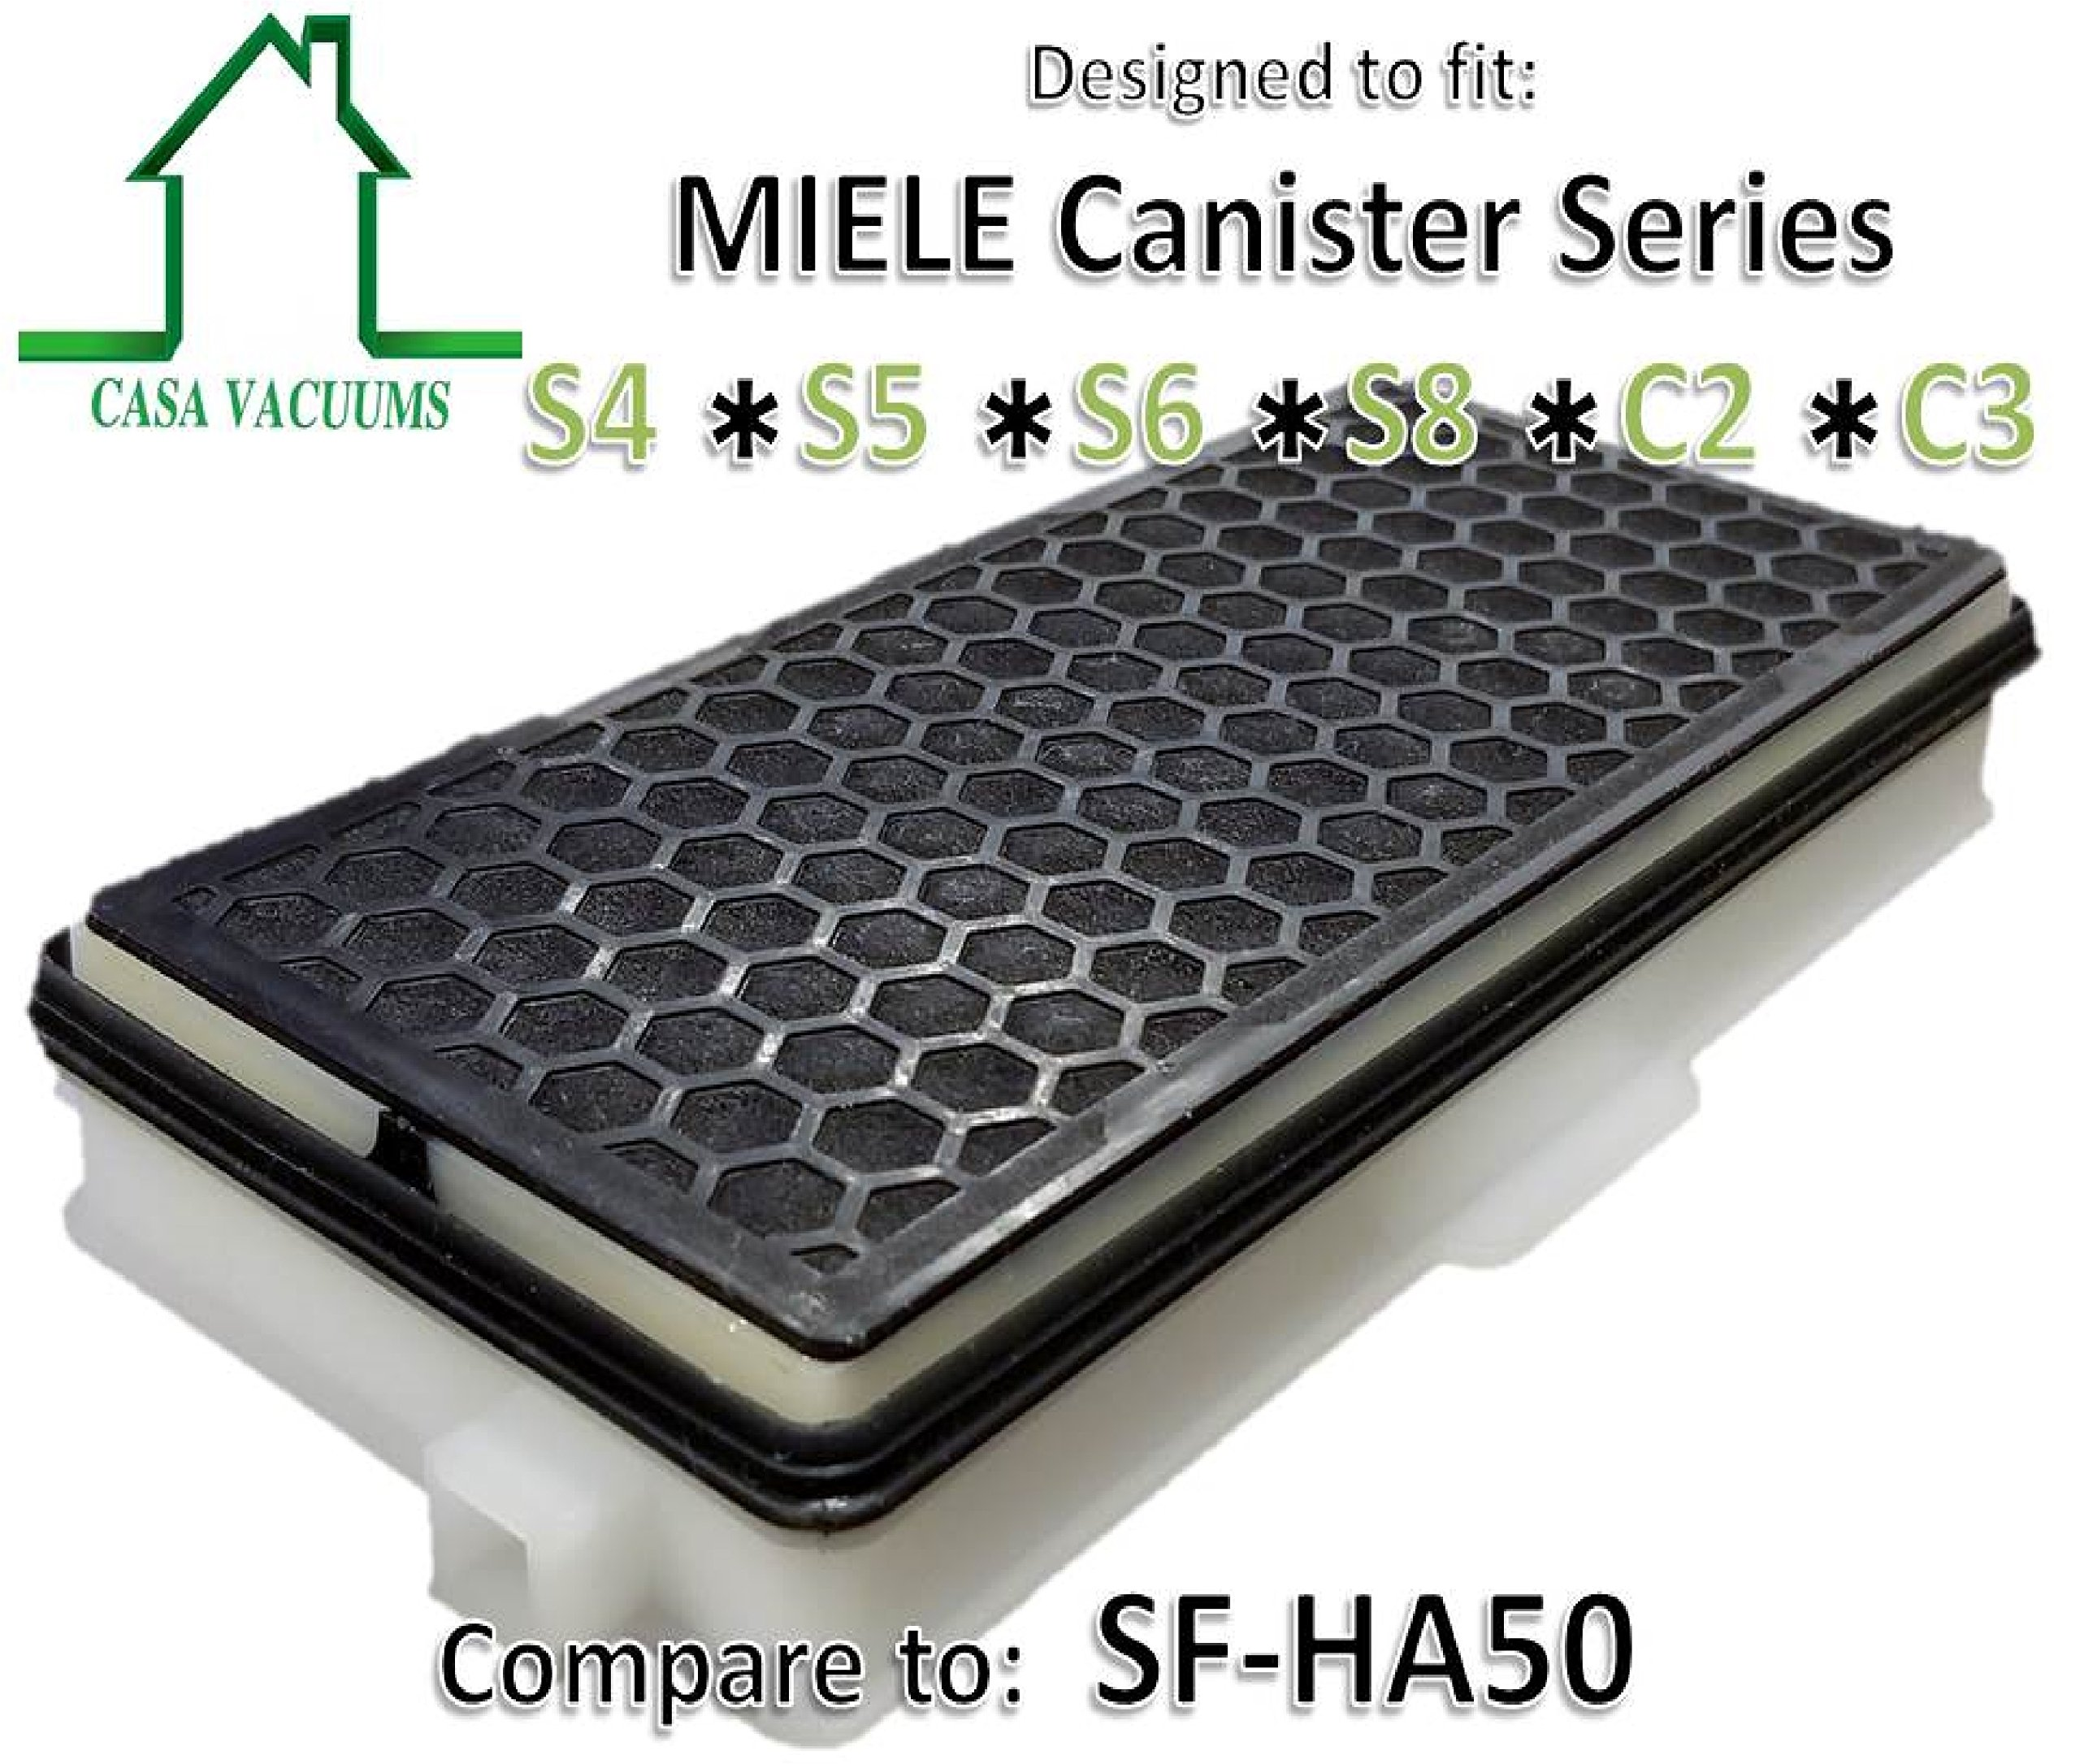 Casa Vacuums 2 PK Miele SF-HA50 Replacement Hepa Filters with Activated Carbon C2 and C3 Series Miele Canister vacuums. S5000 S6000 Fits S4000 S8000